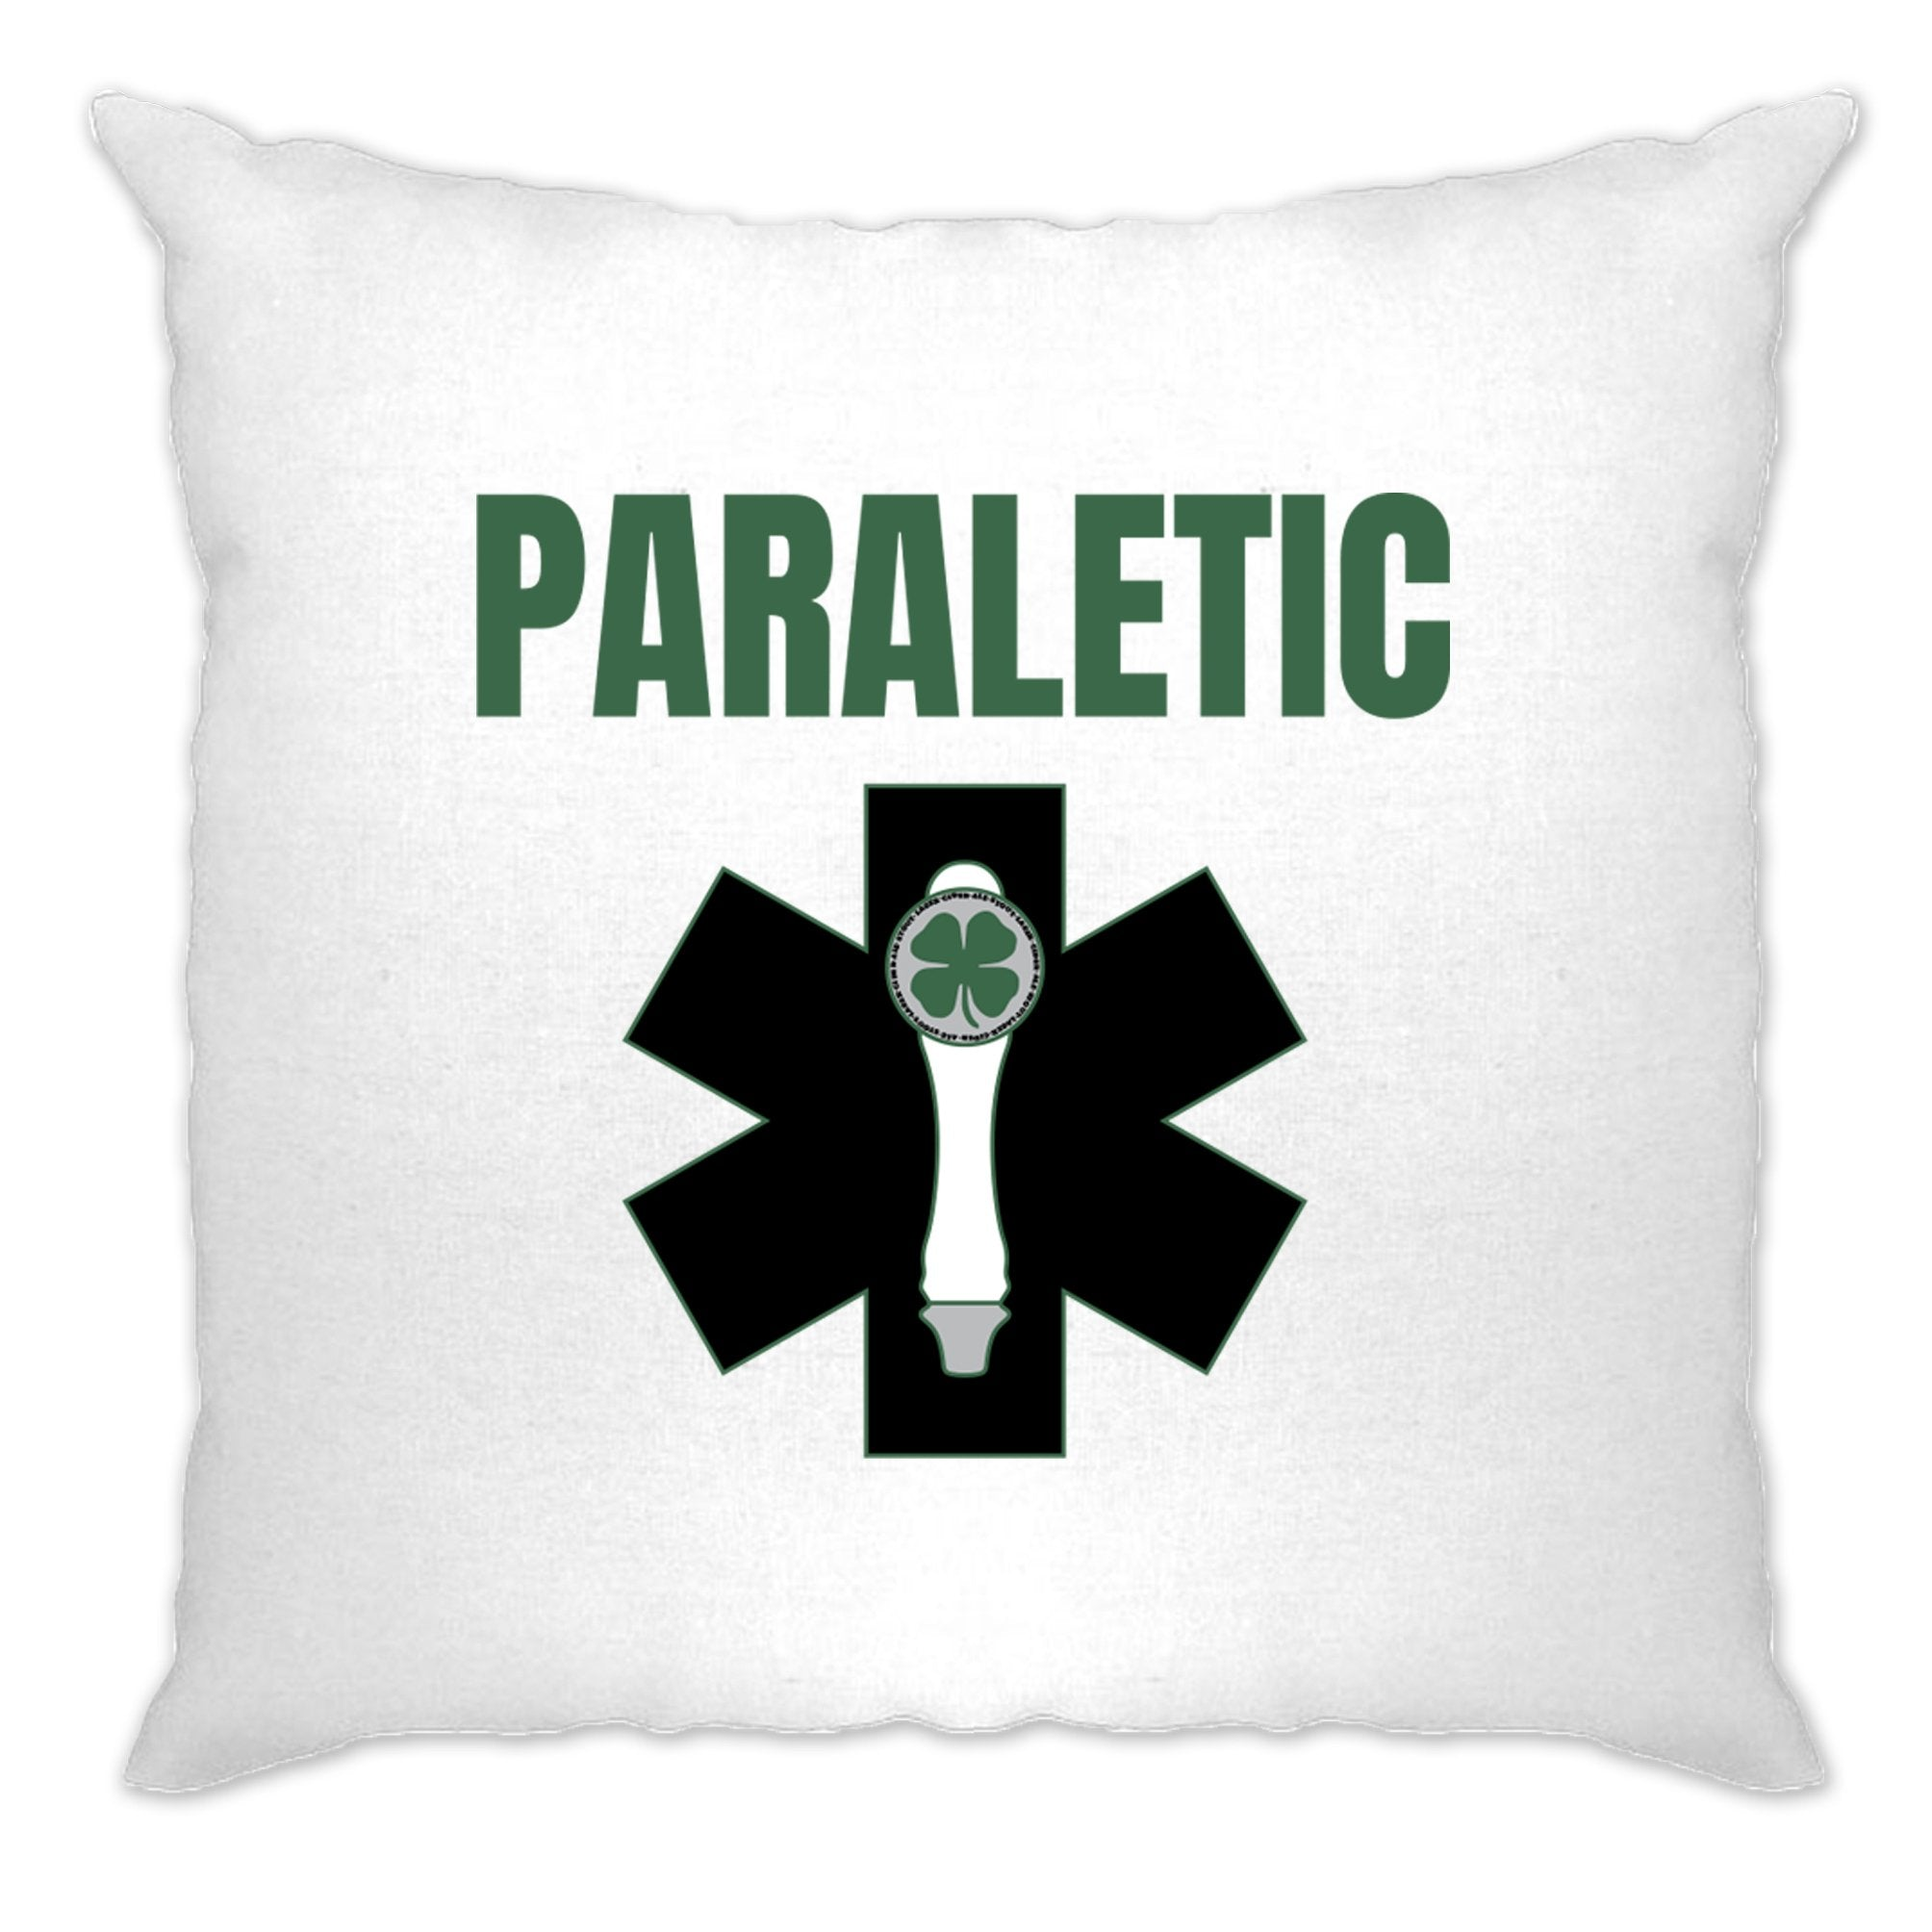 St. Patricks Cushion Cover Paraletic joke Pun